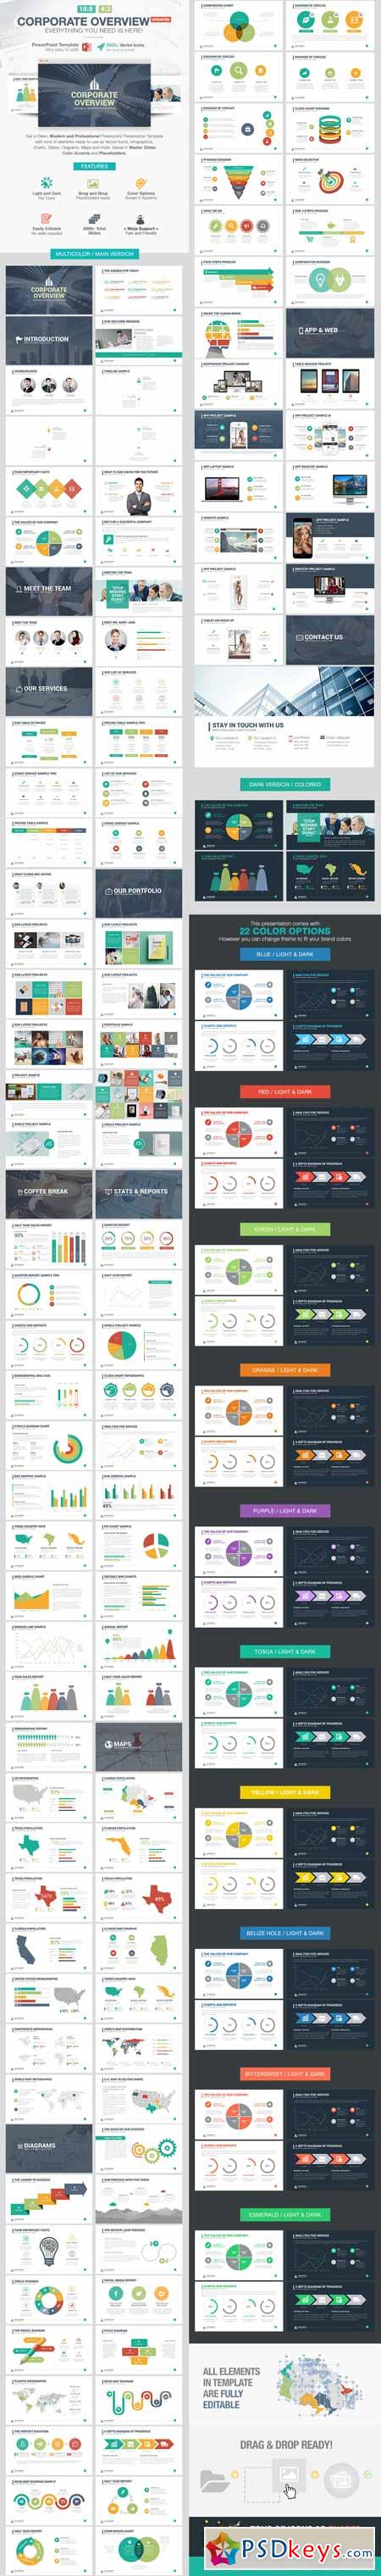 Corporate Overview Powerpoint Template 10684827